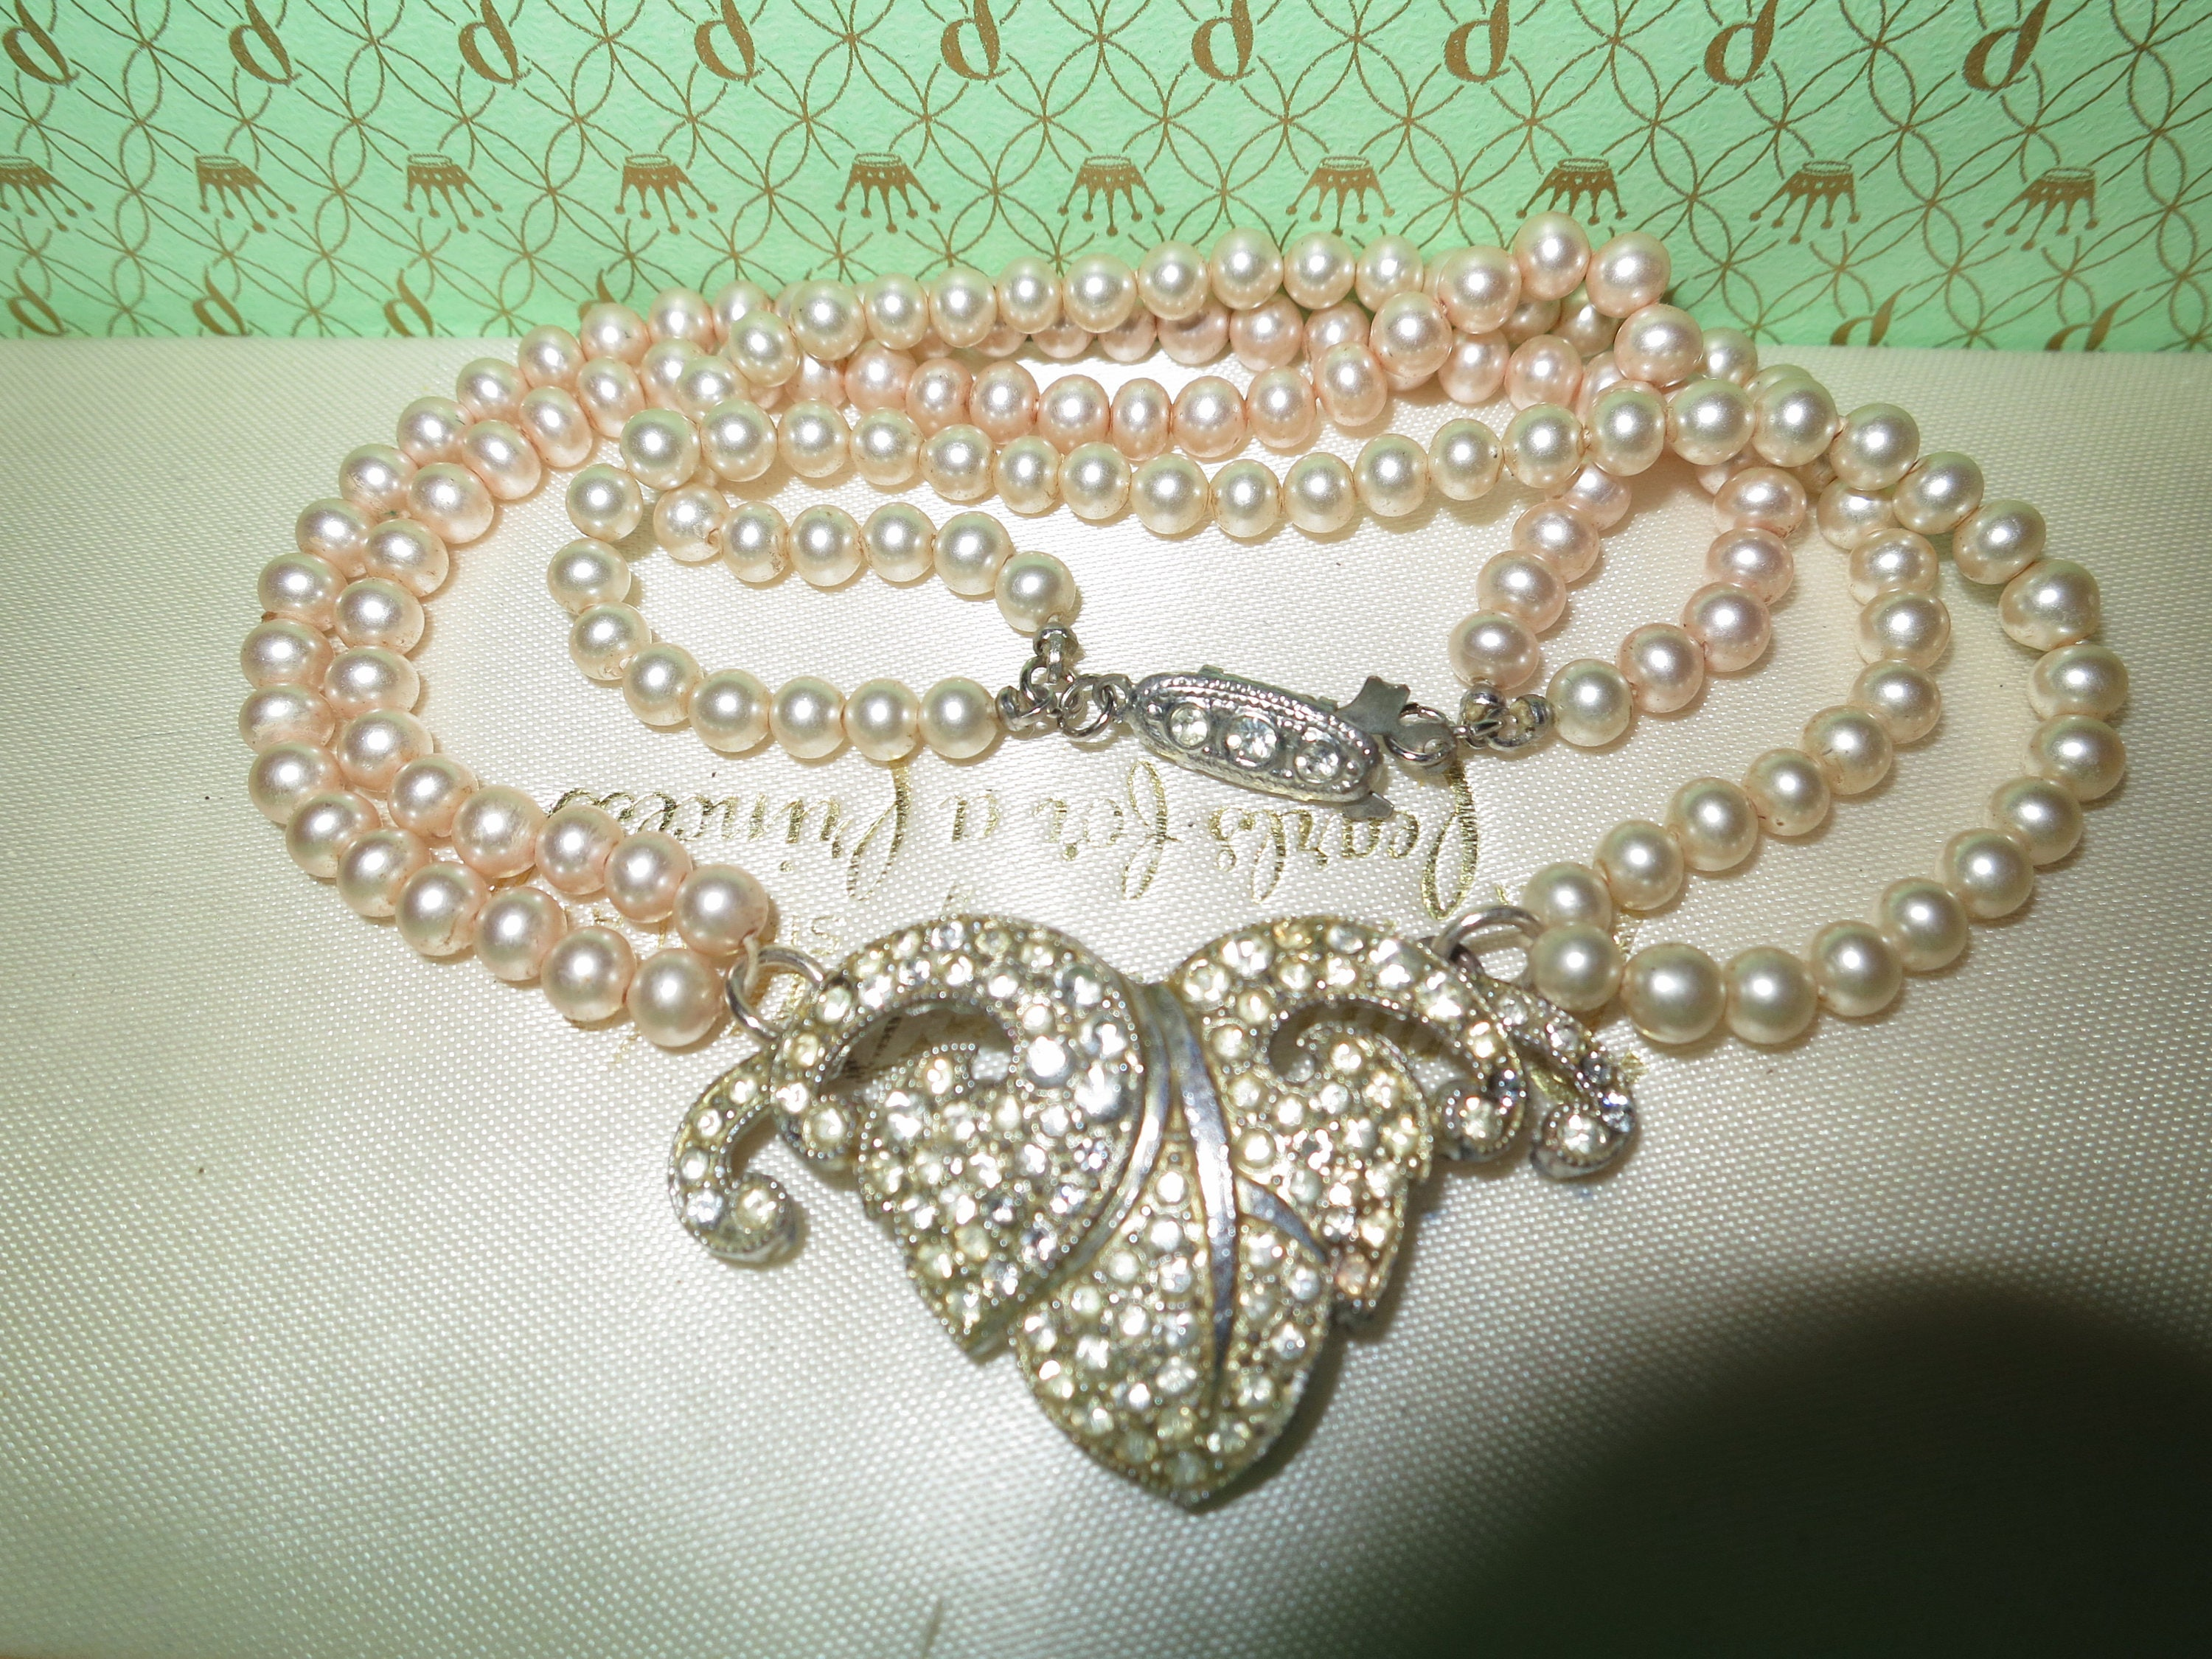 973a612975d3a Vintage Art Deco 2 strand glass pearl and diamante necklace